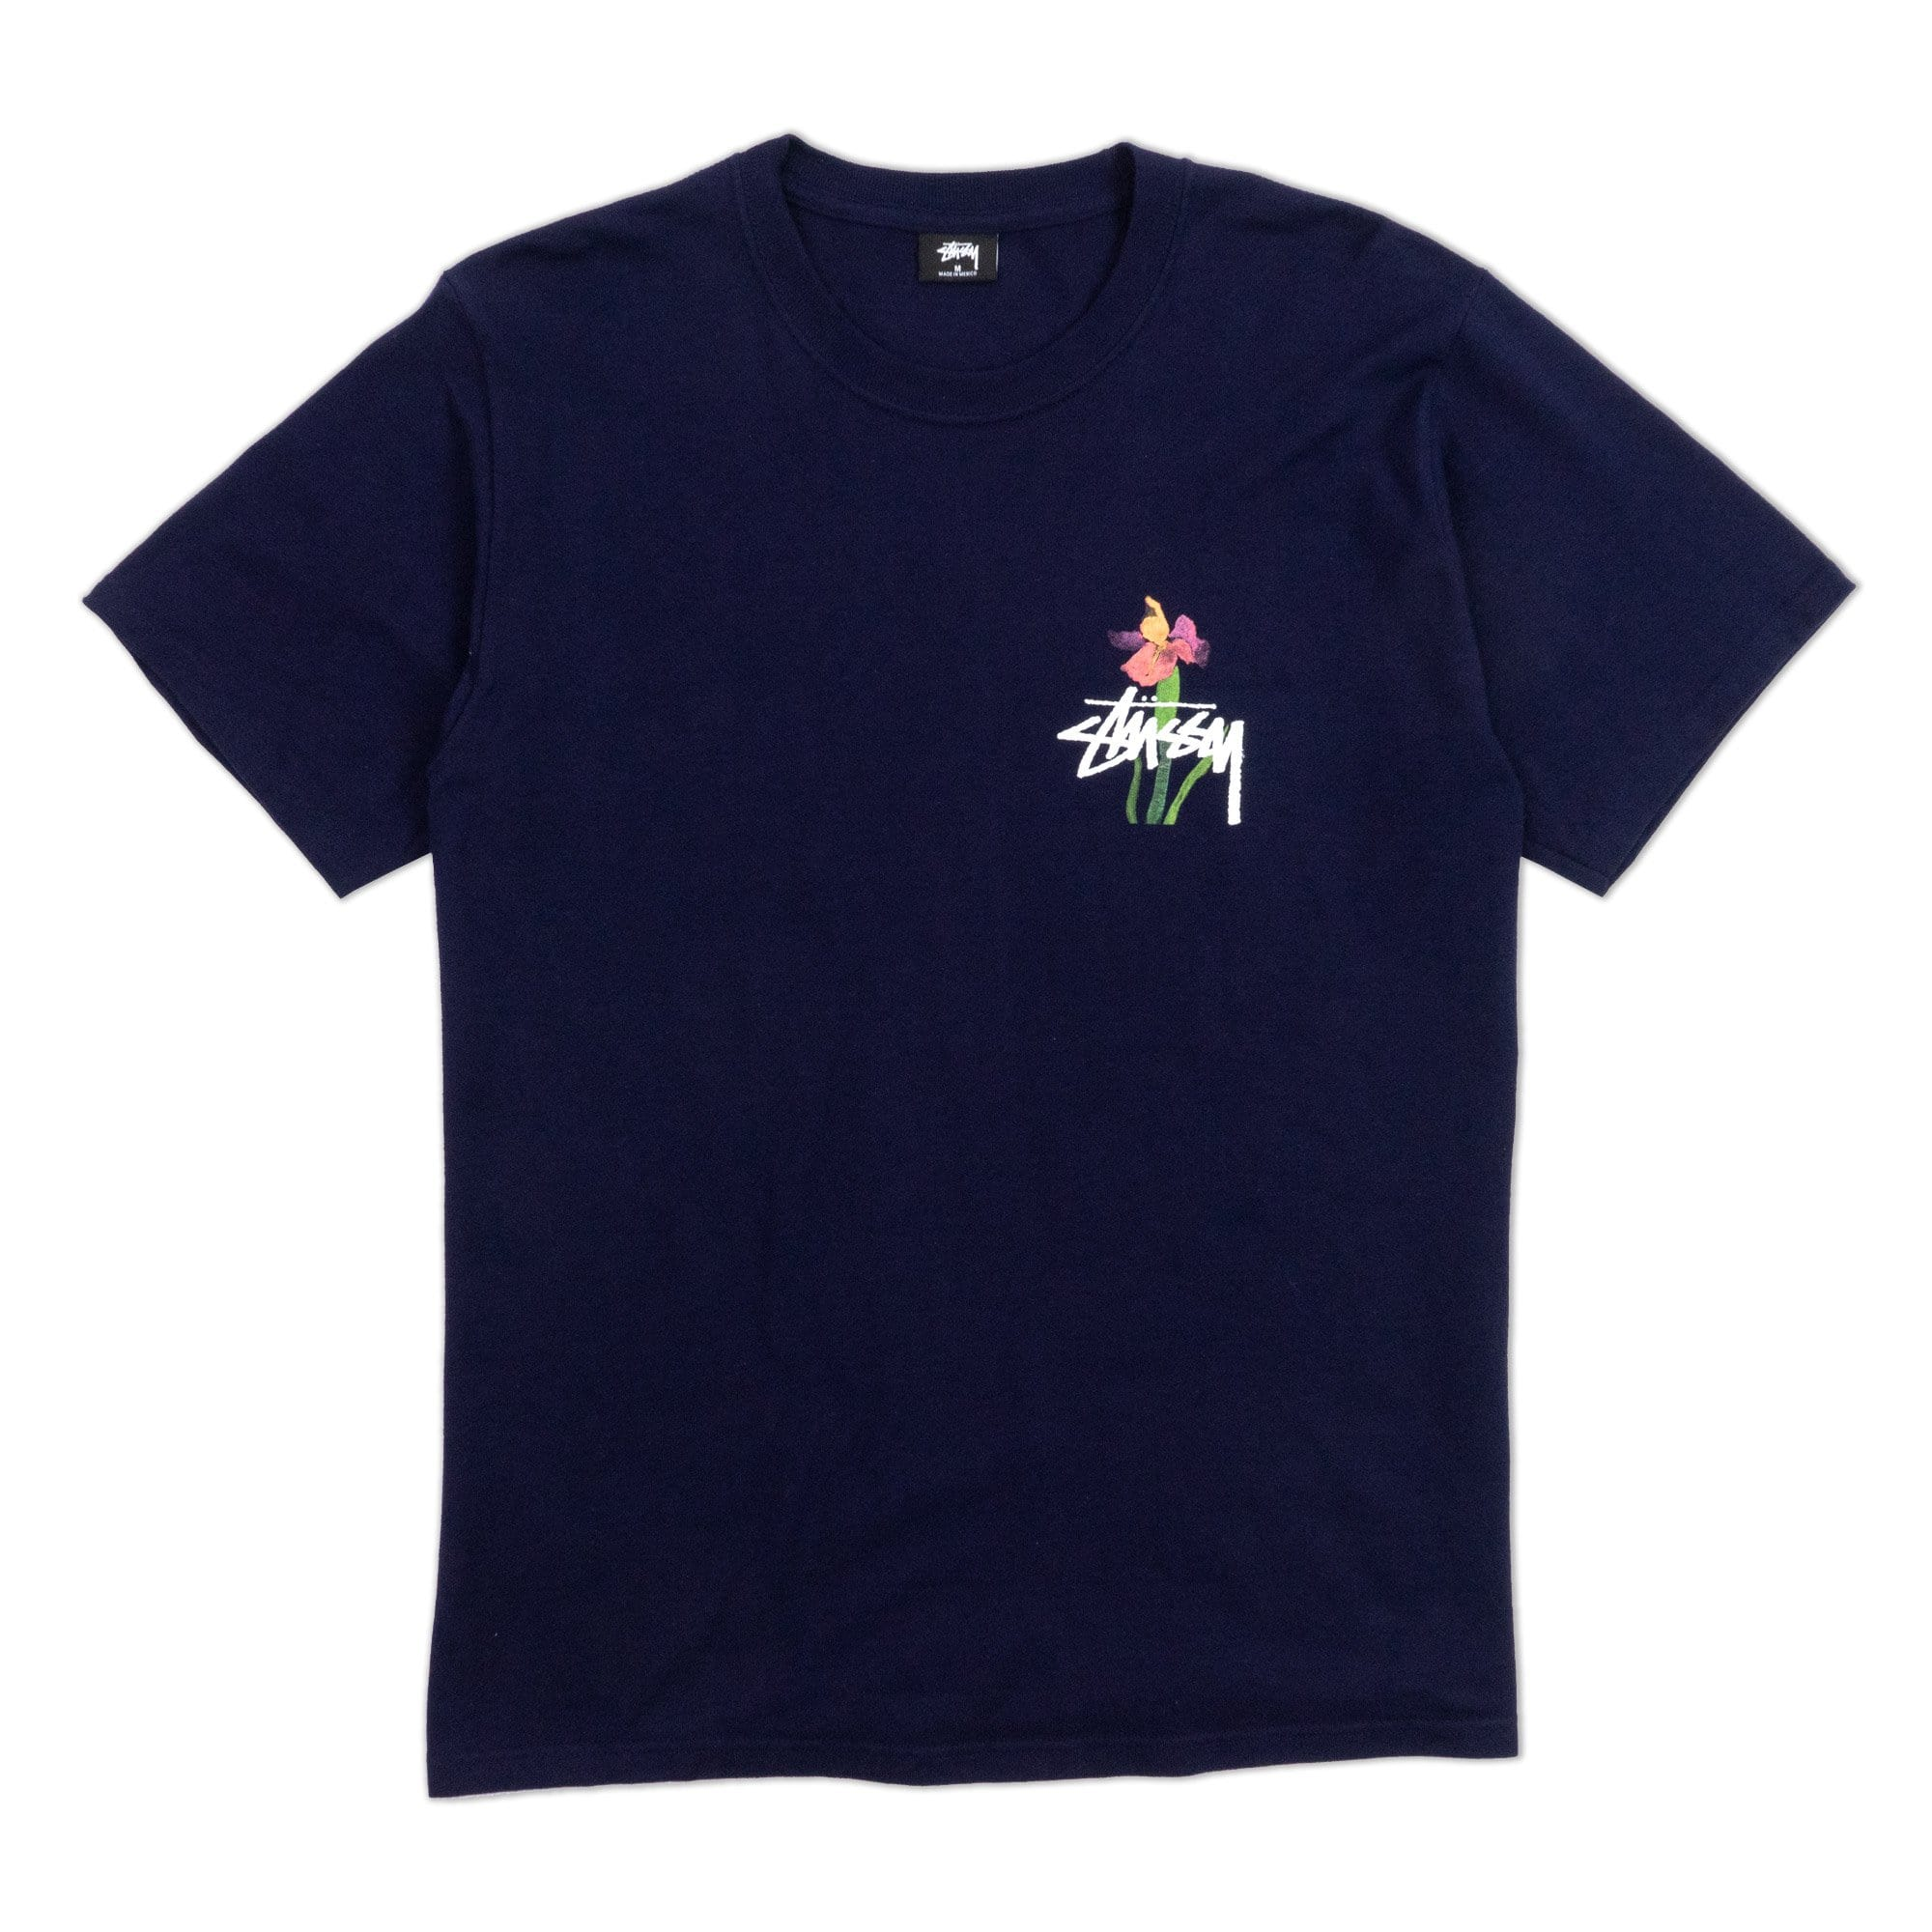 Stüssy T-Shirts M Water Flowers Tee